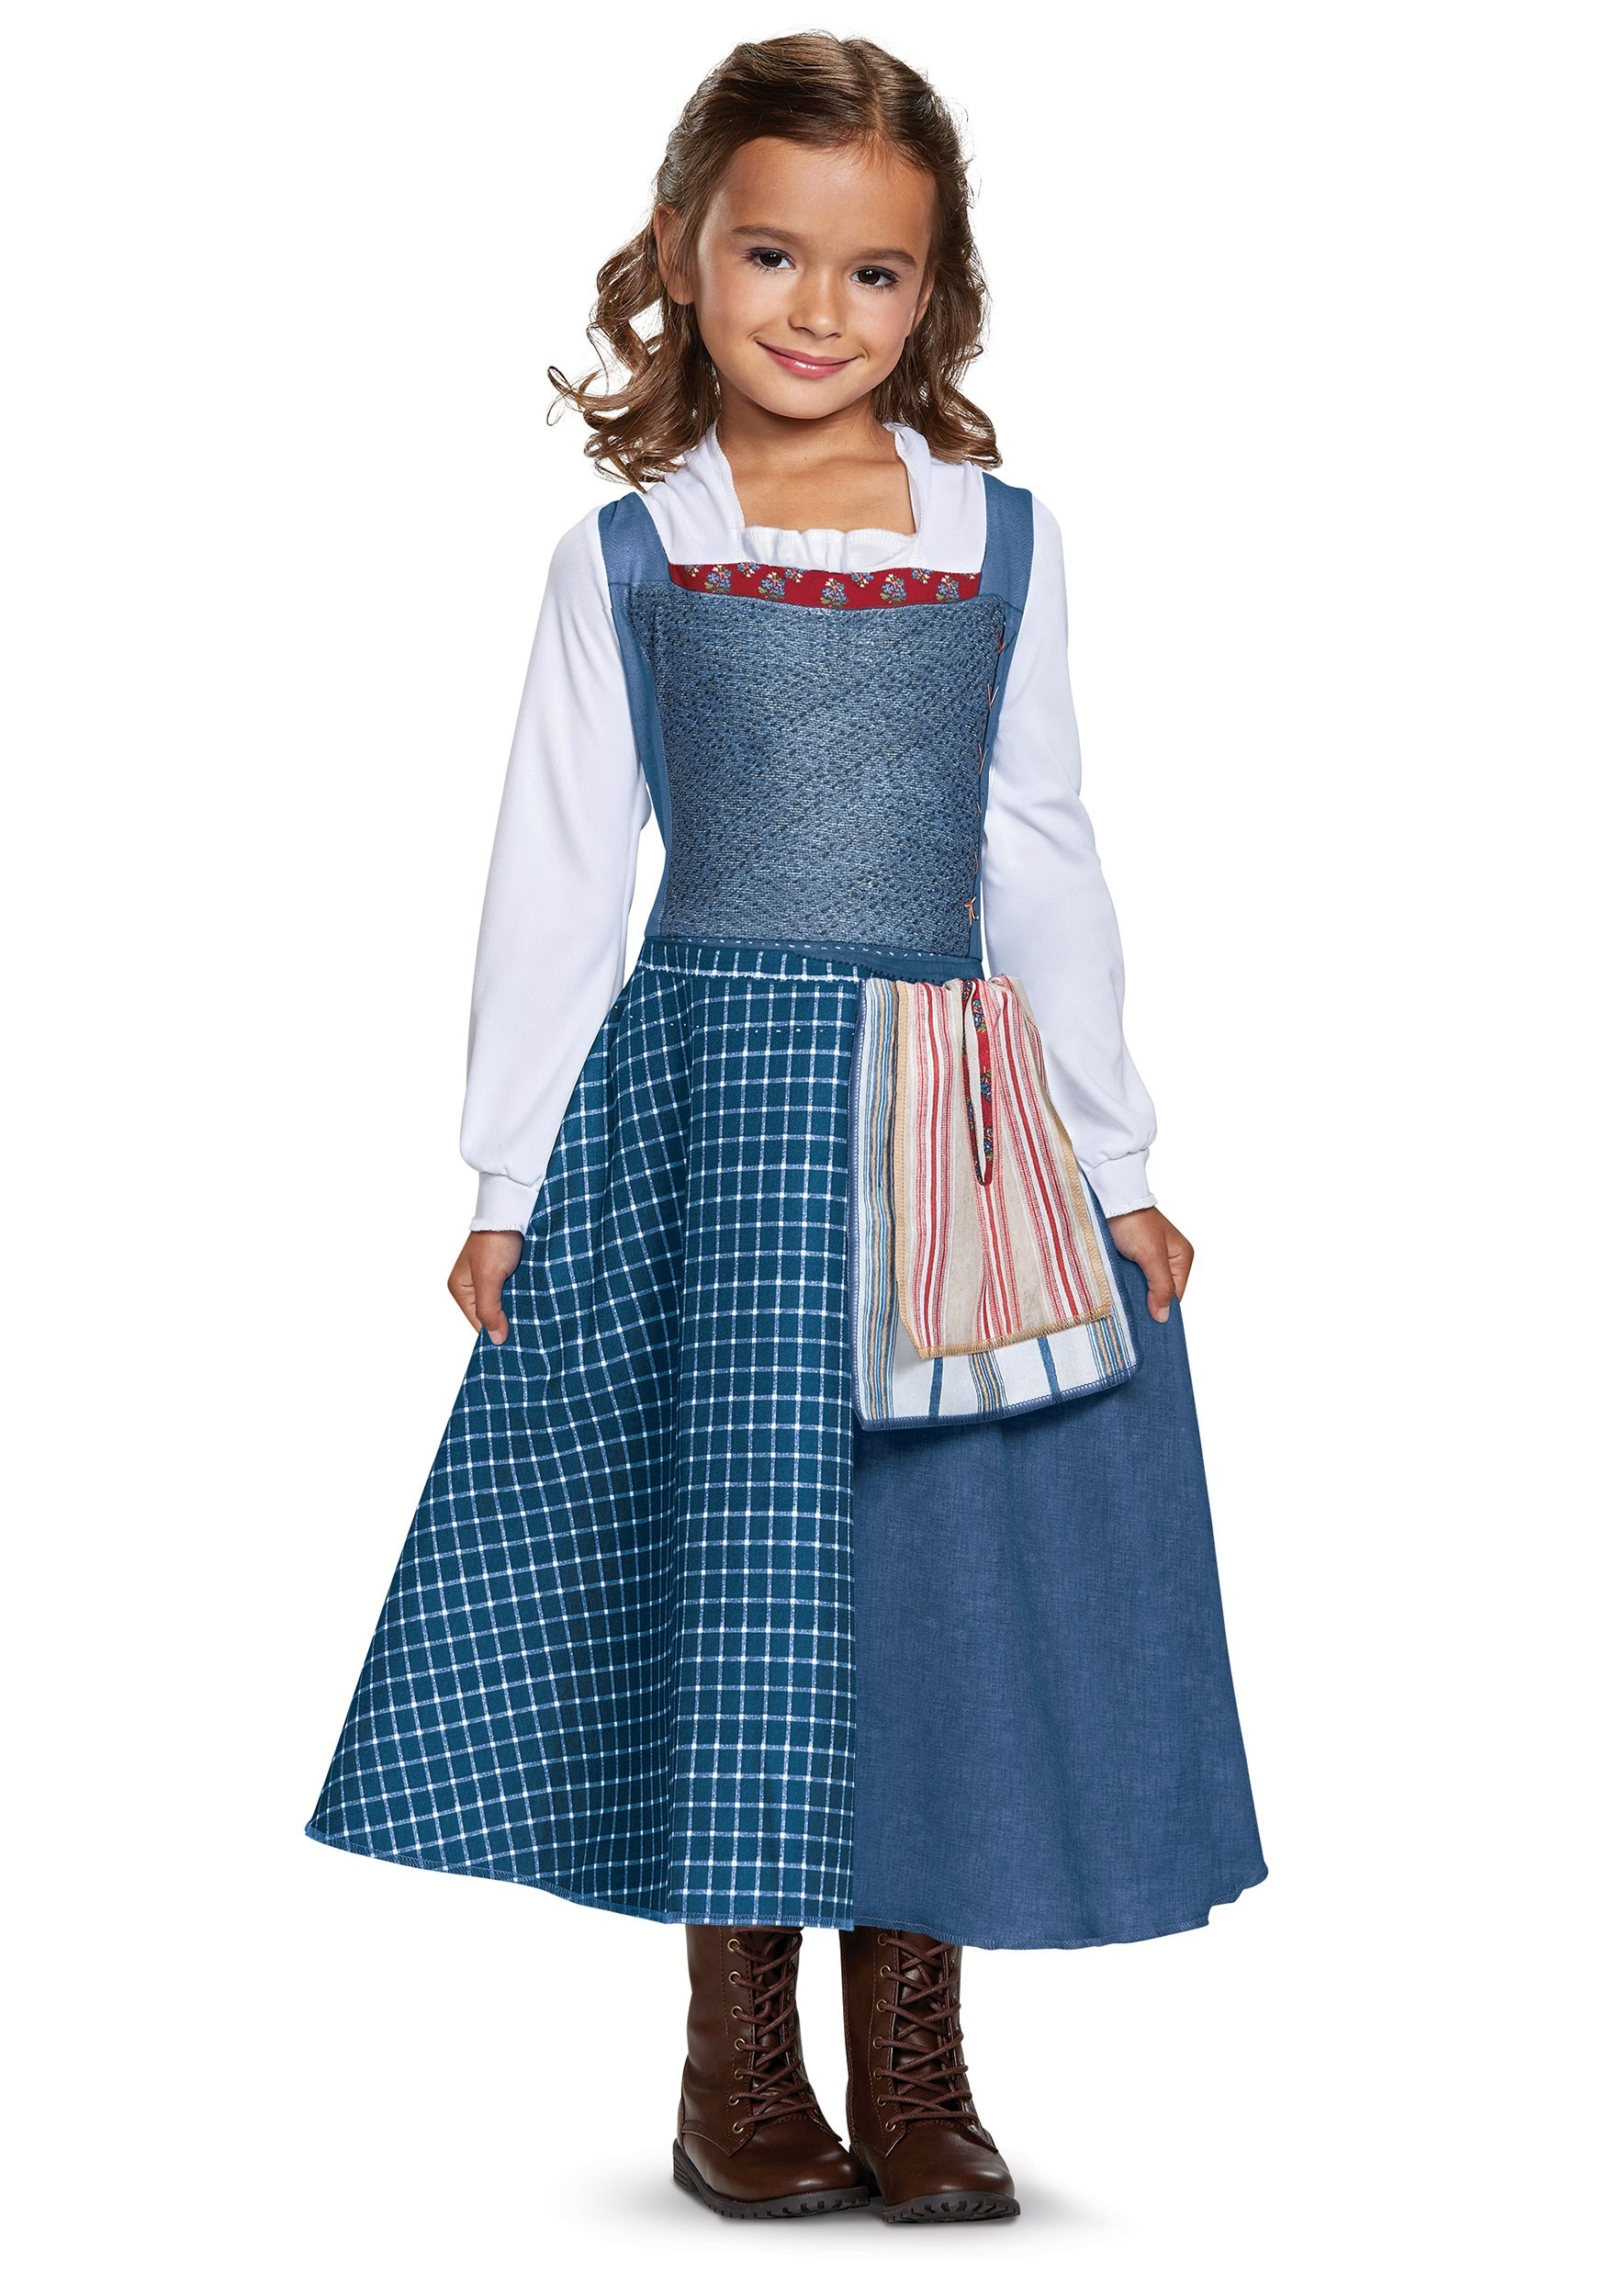 Officially licensed Belle blue dress costume for girls from new live action Beauty and the Beast movie